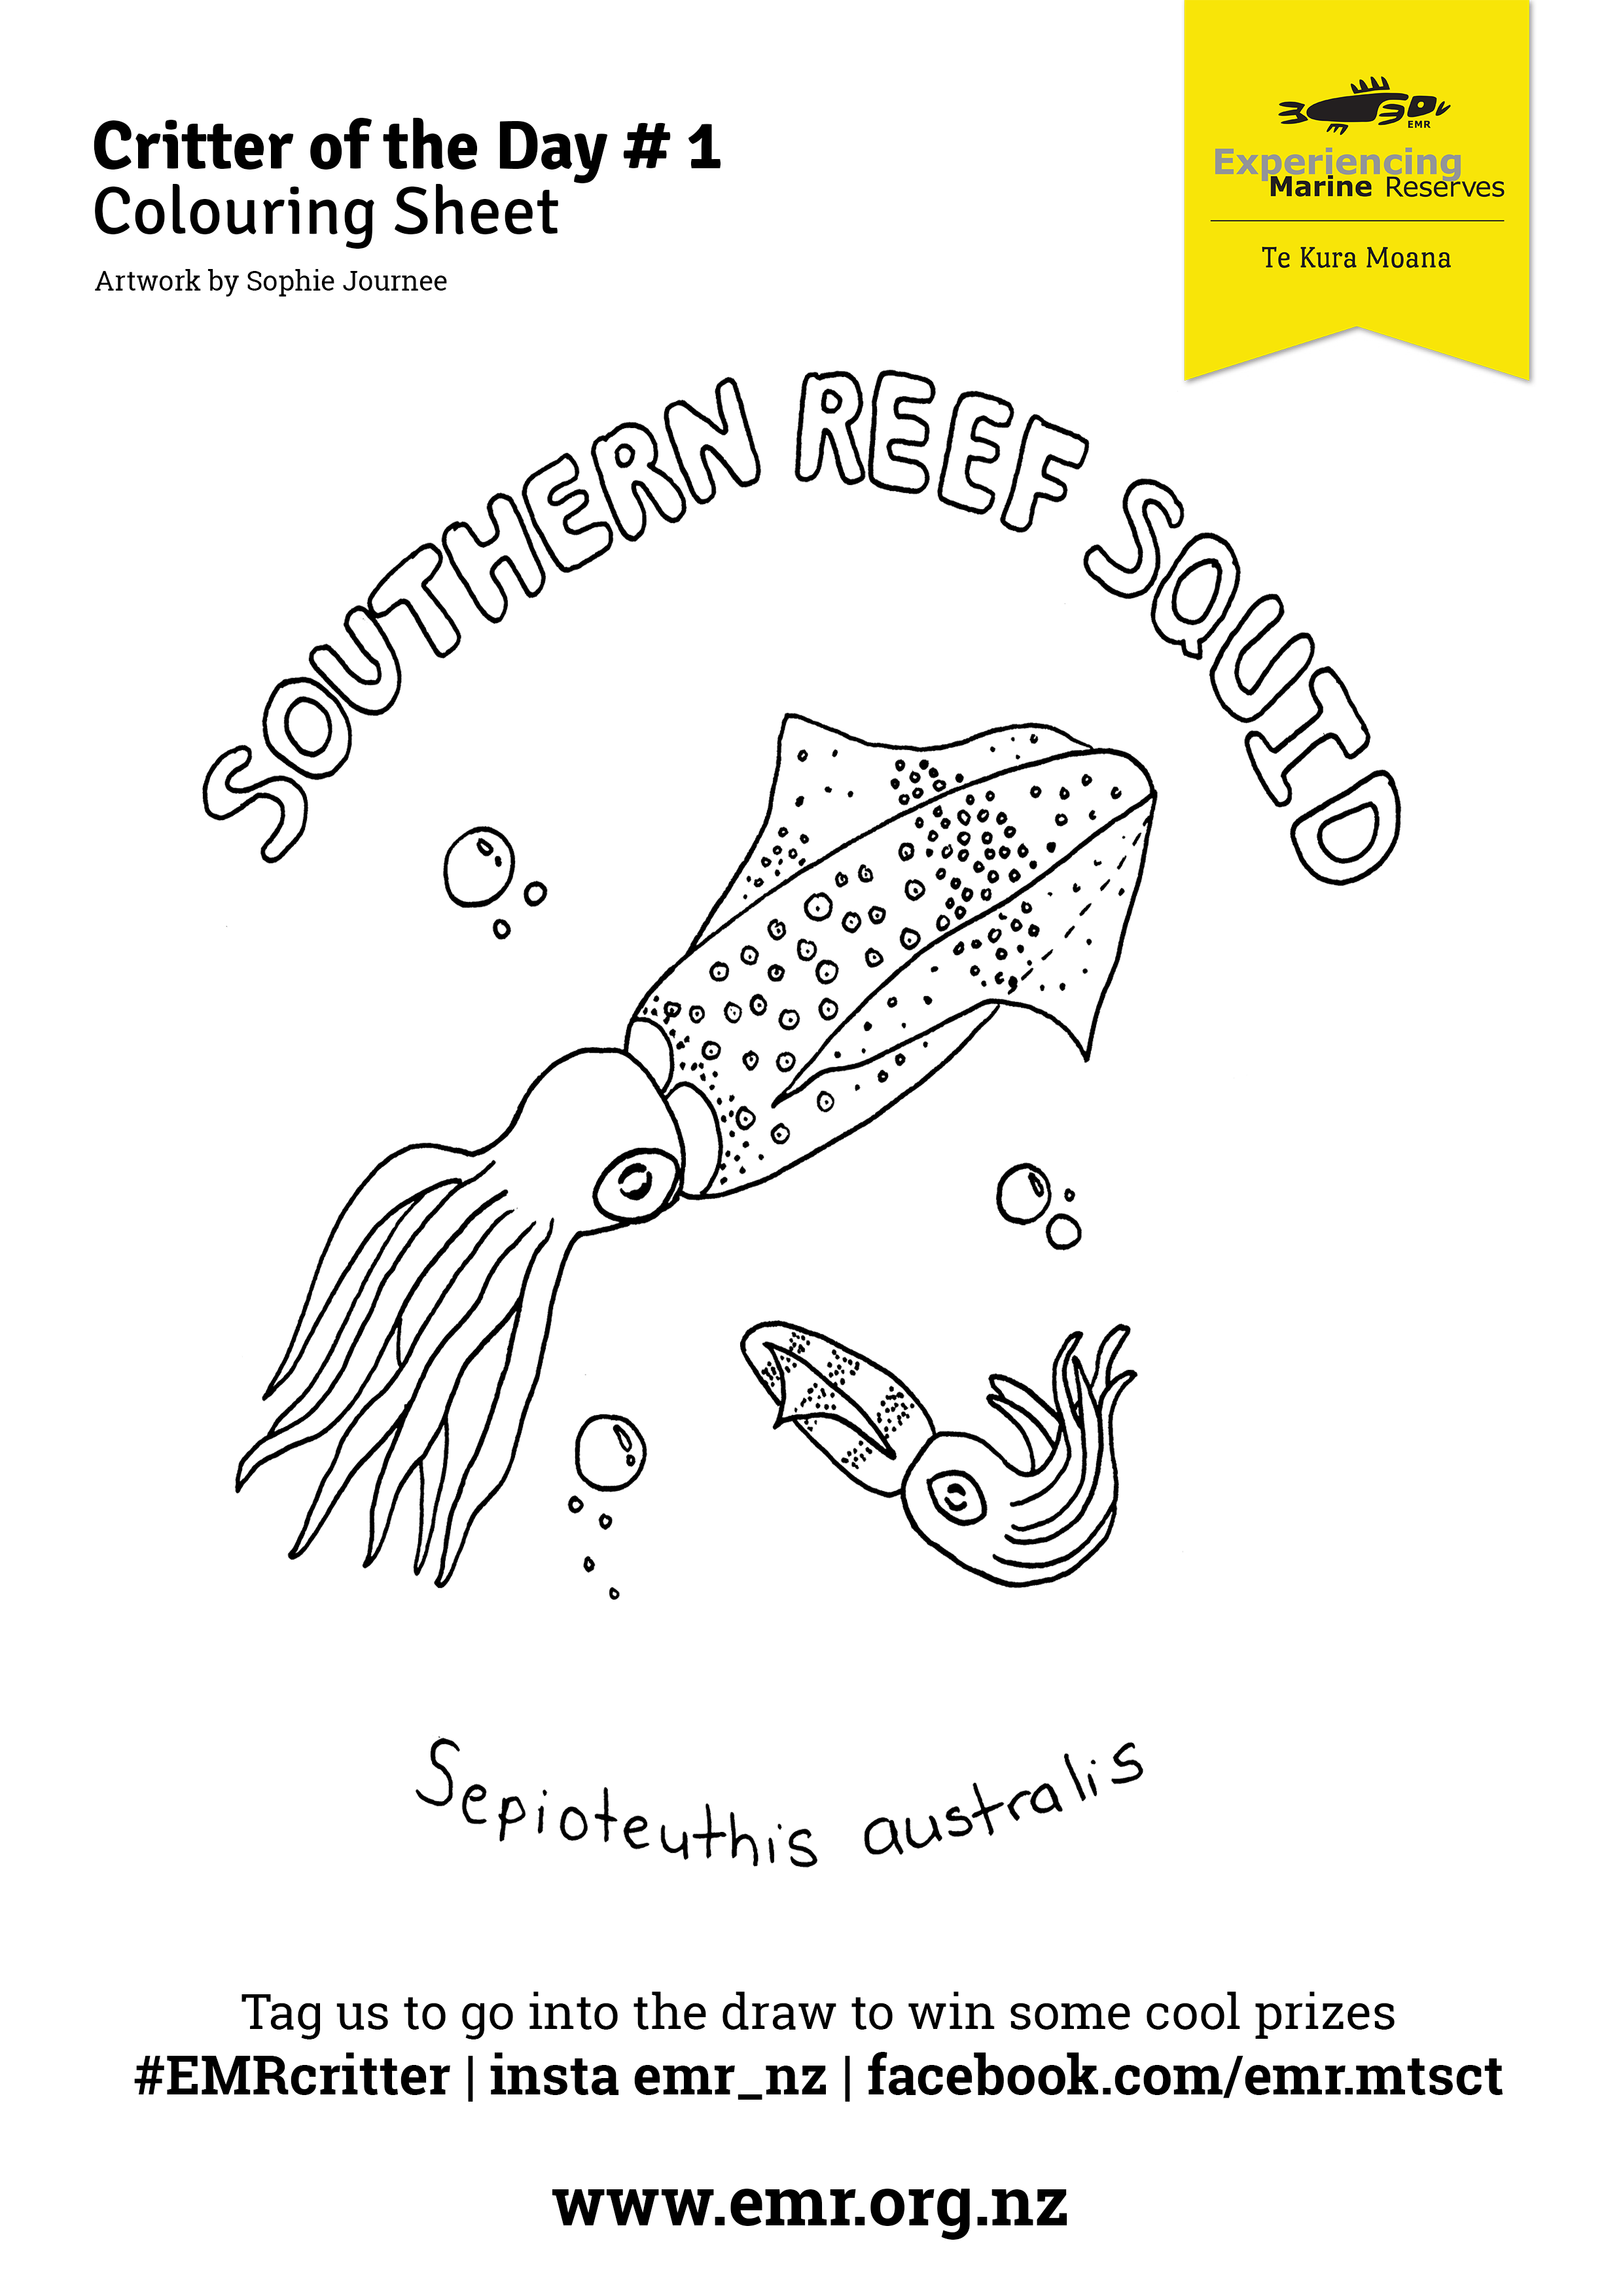 Critter of the Day Southern Reef Squid Colouring in